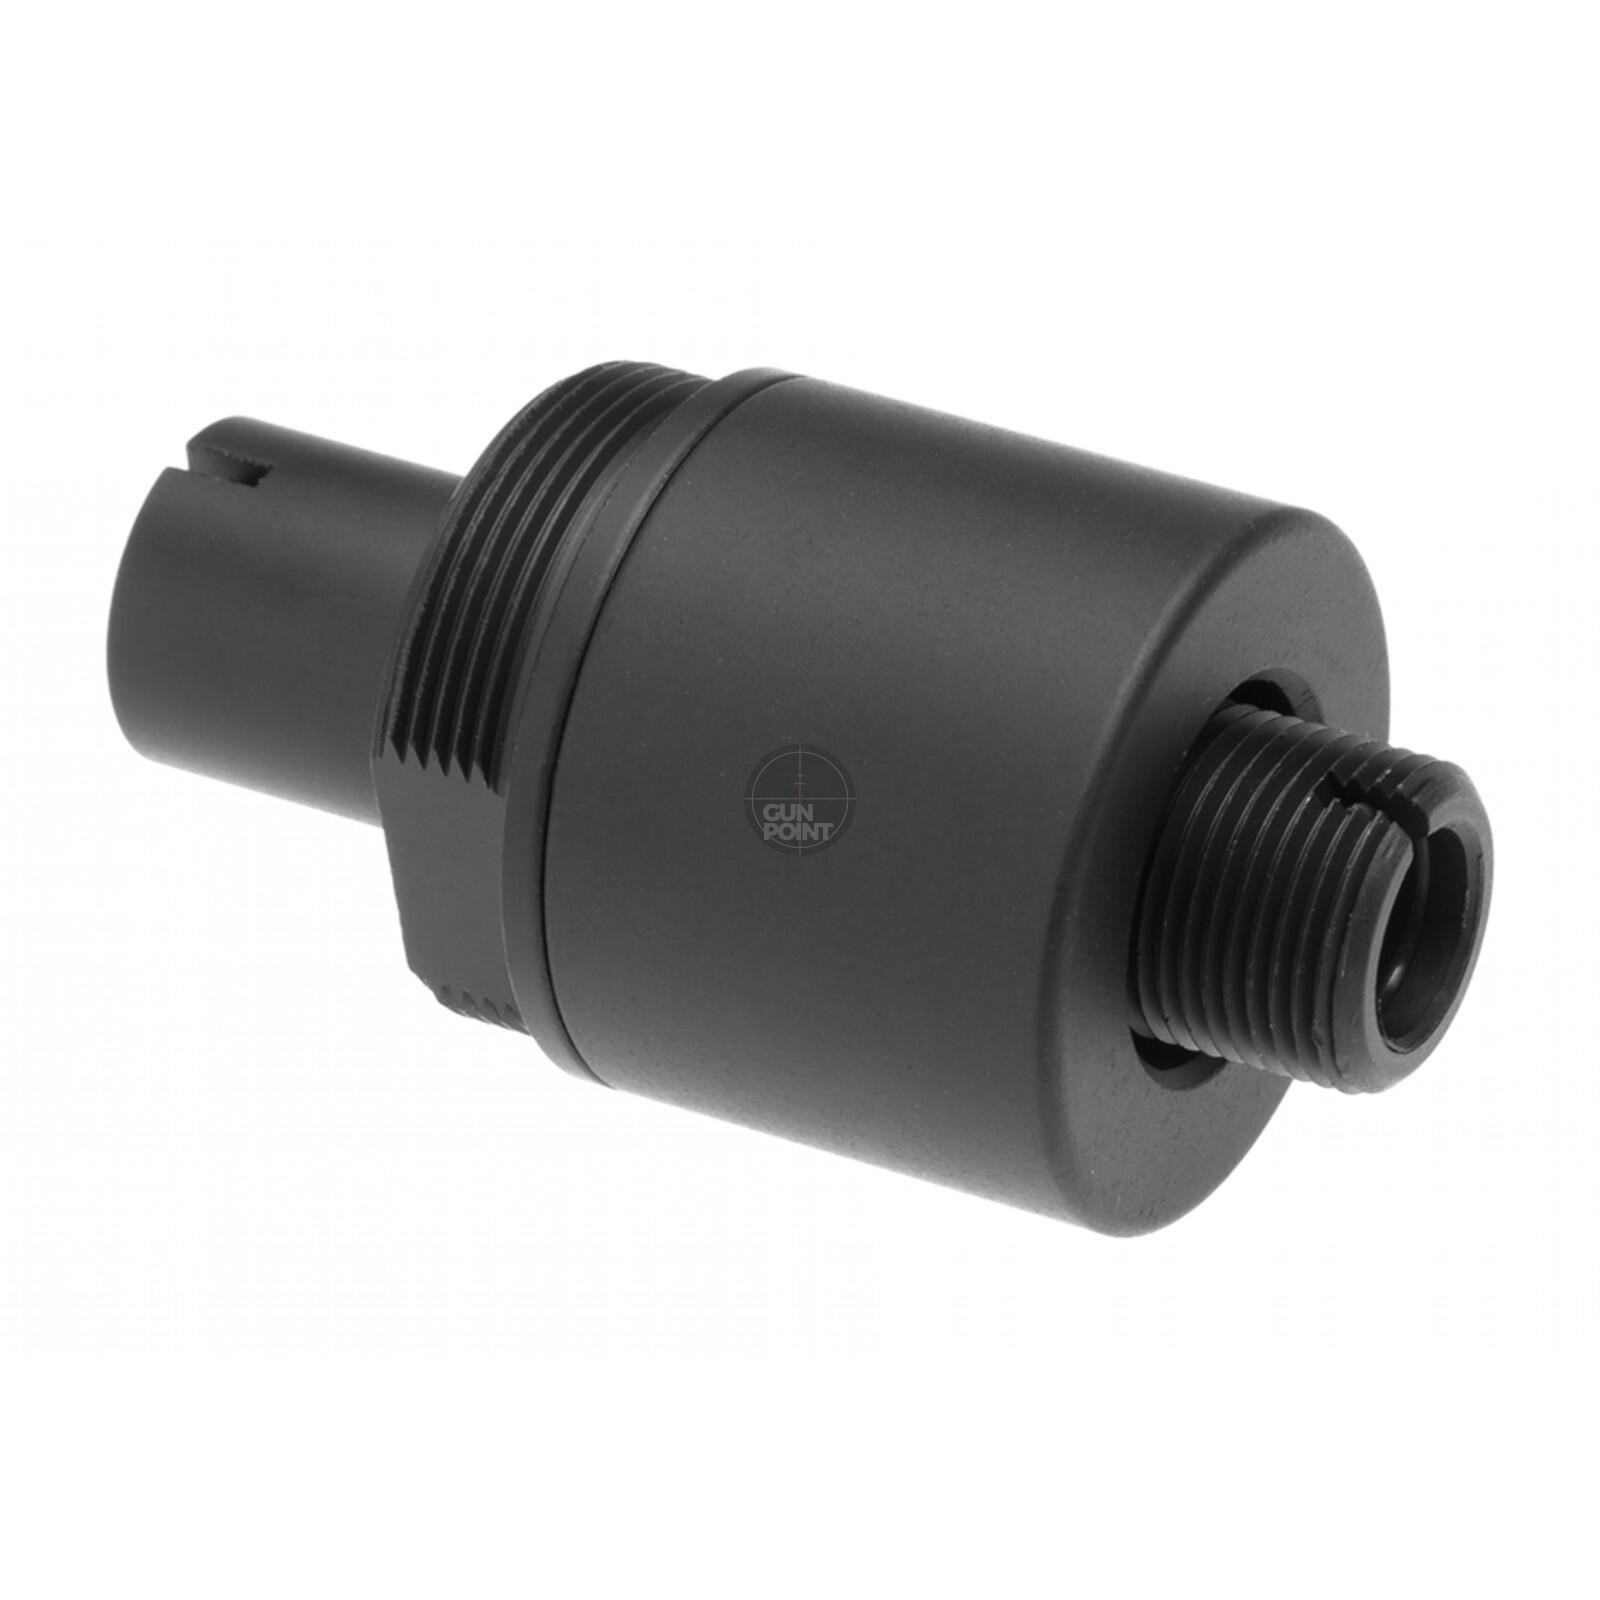 Maple Leaf VSR-10 G-Spec Mode Silencer Adapter Head